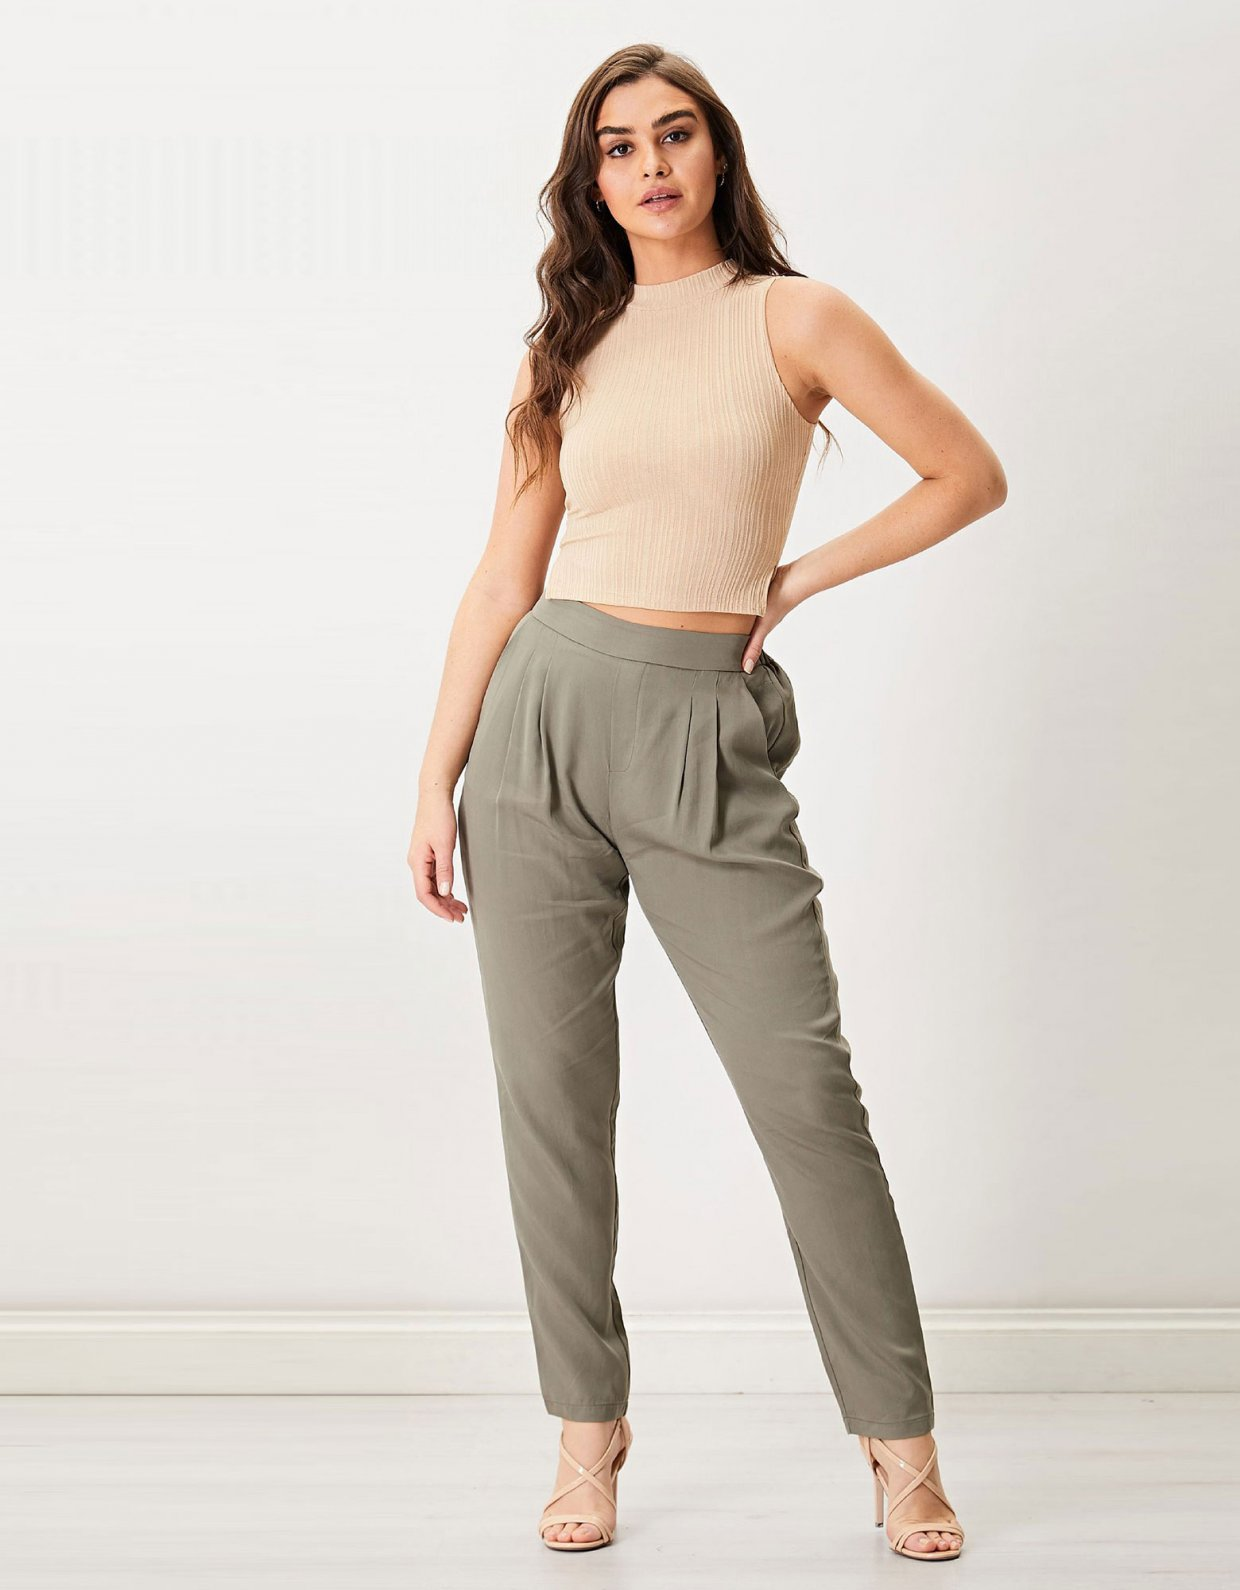 ANGELEYE Julia khaki pants